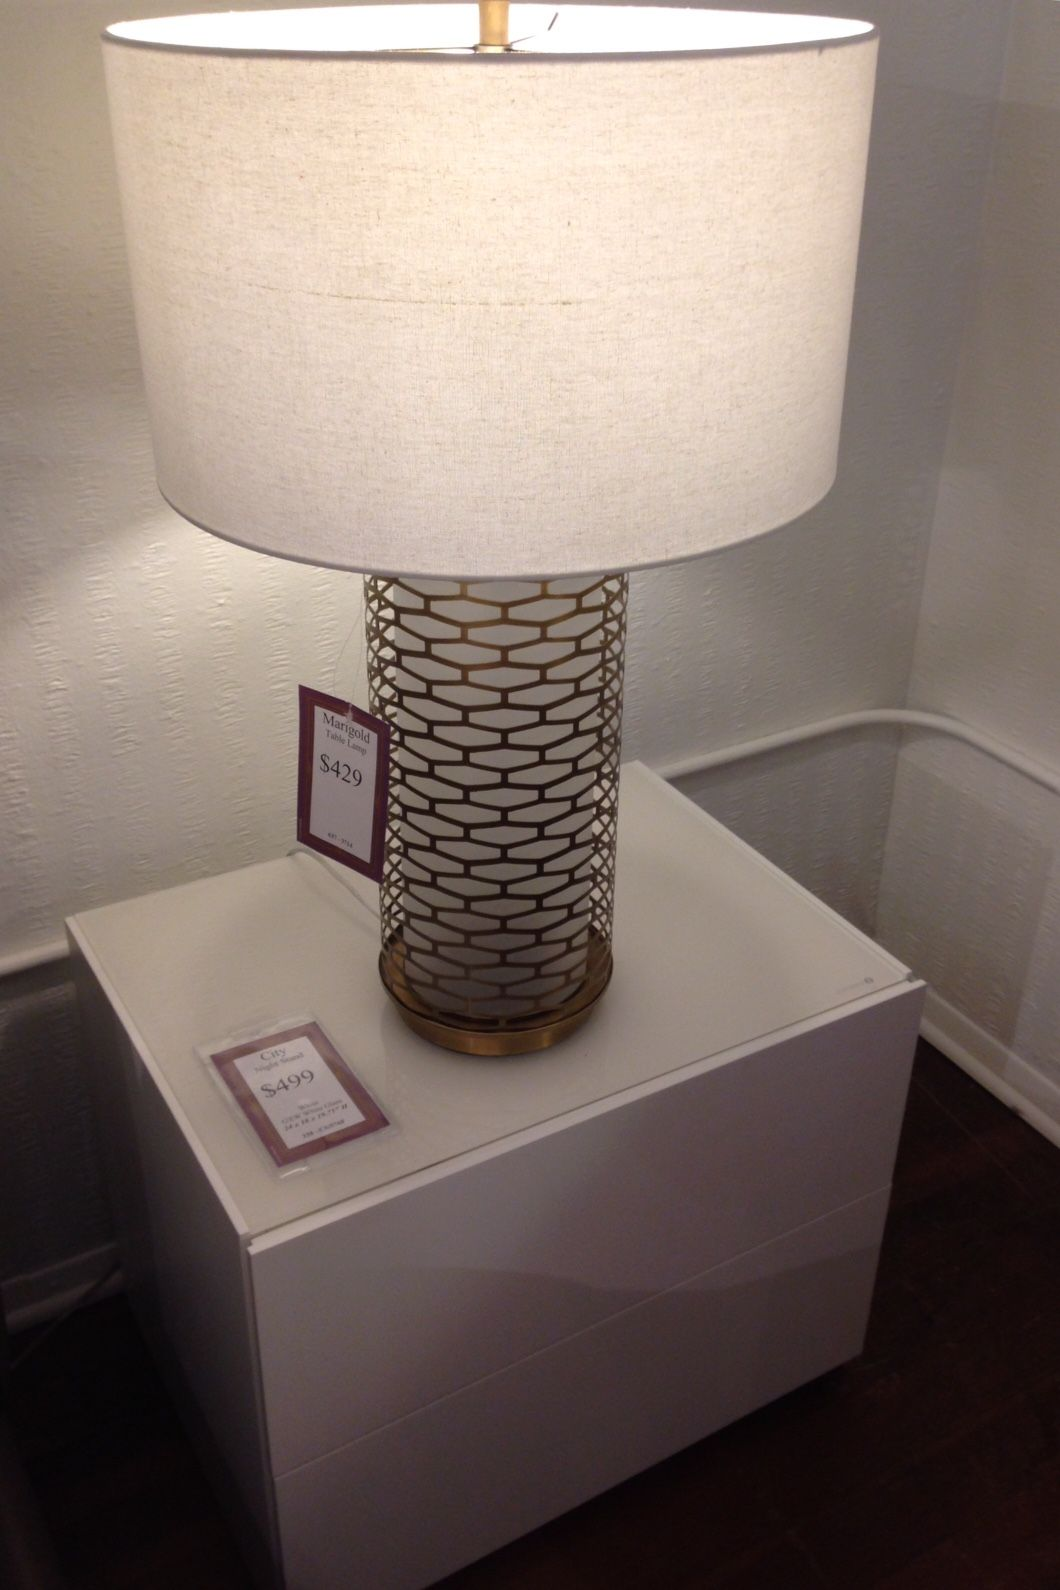 Flow decor marigold table lamp at blueprint furniture in los angeles flow decor marigold table lamp at blueprint furniture in los angeles ca 90035 malvernweather Gallery